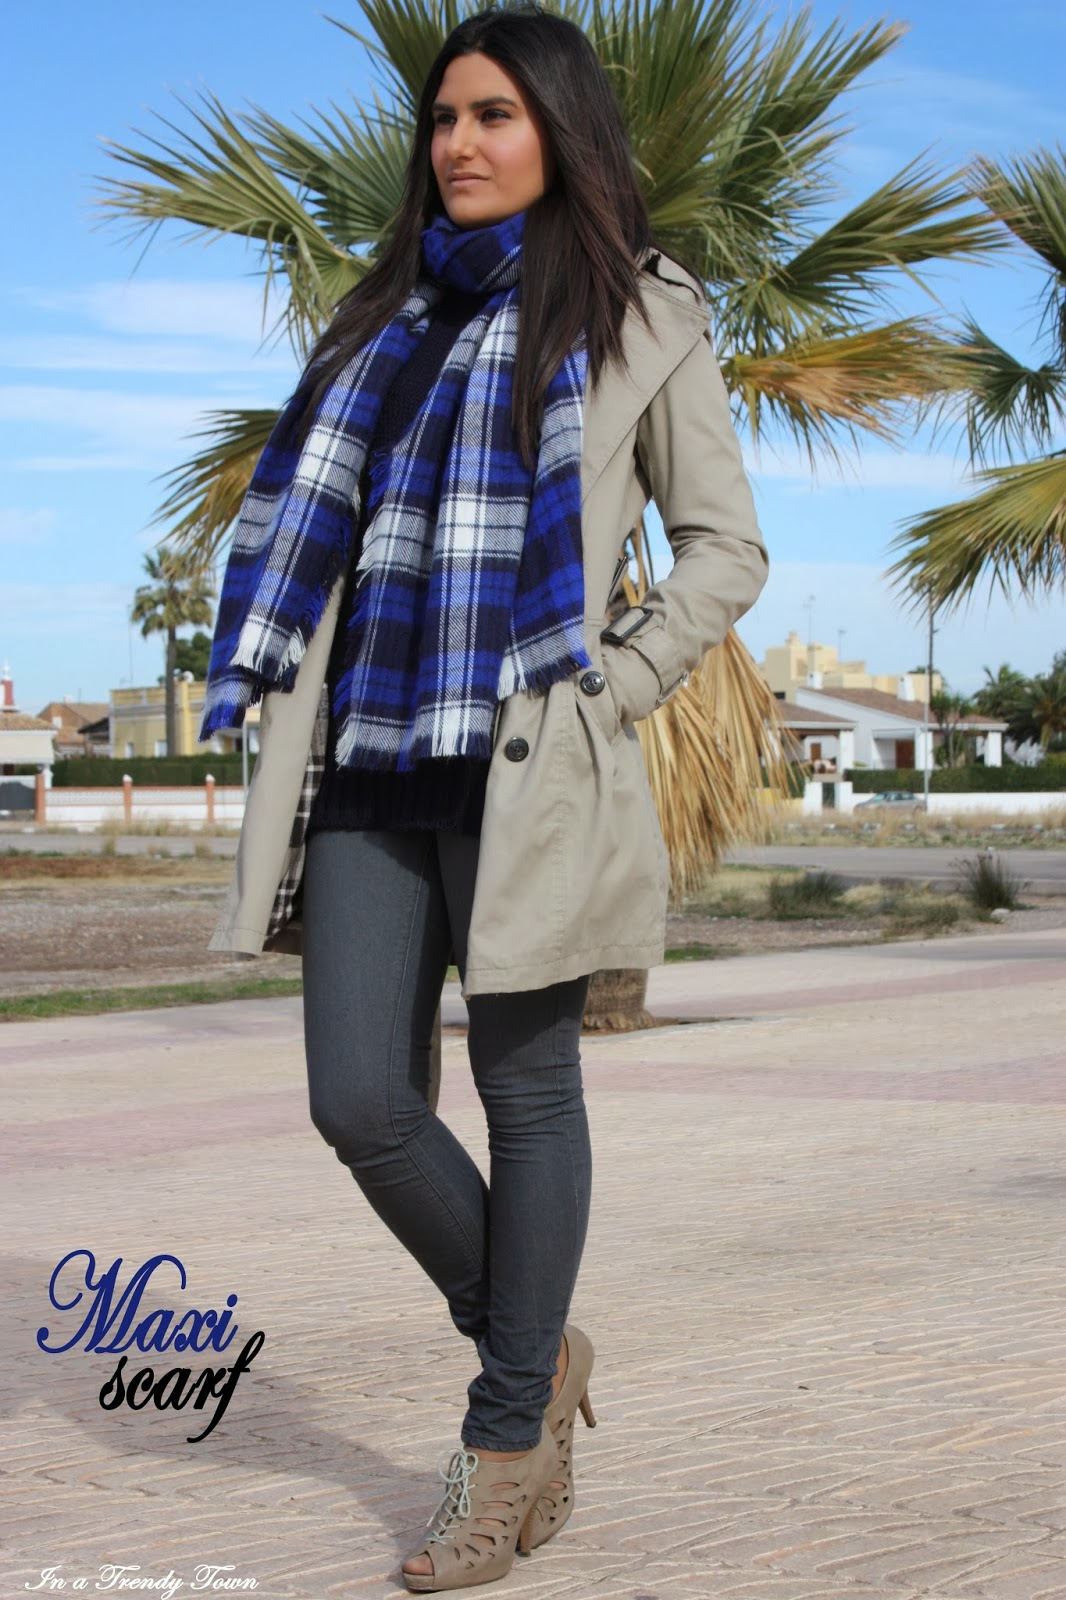 Outfit: Maxi-scarf